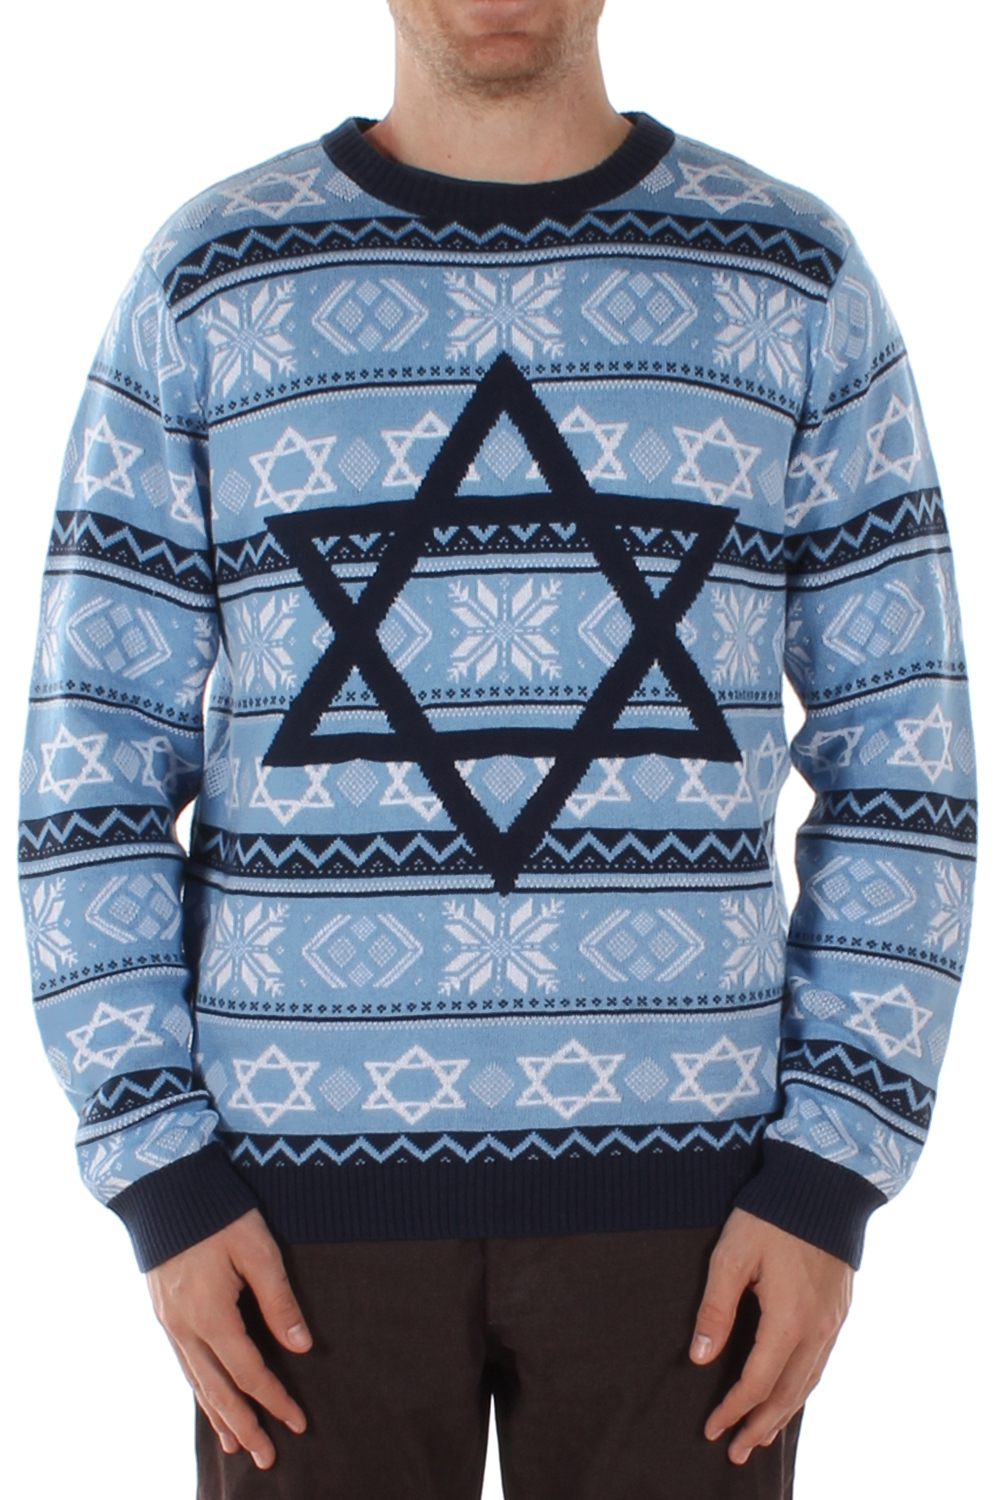 Star of David - The Night Before - Hanukkah Sweater - PopCult Wear